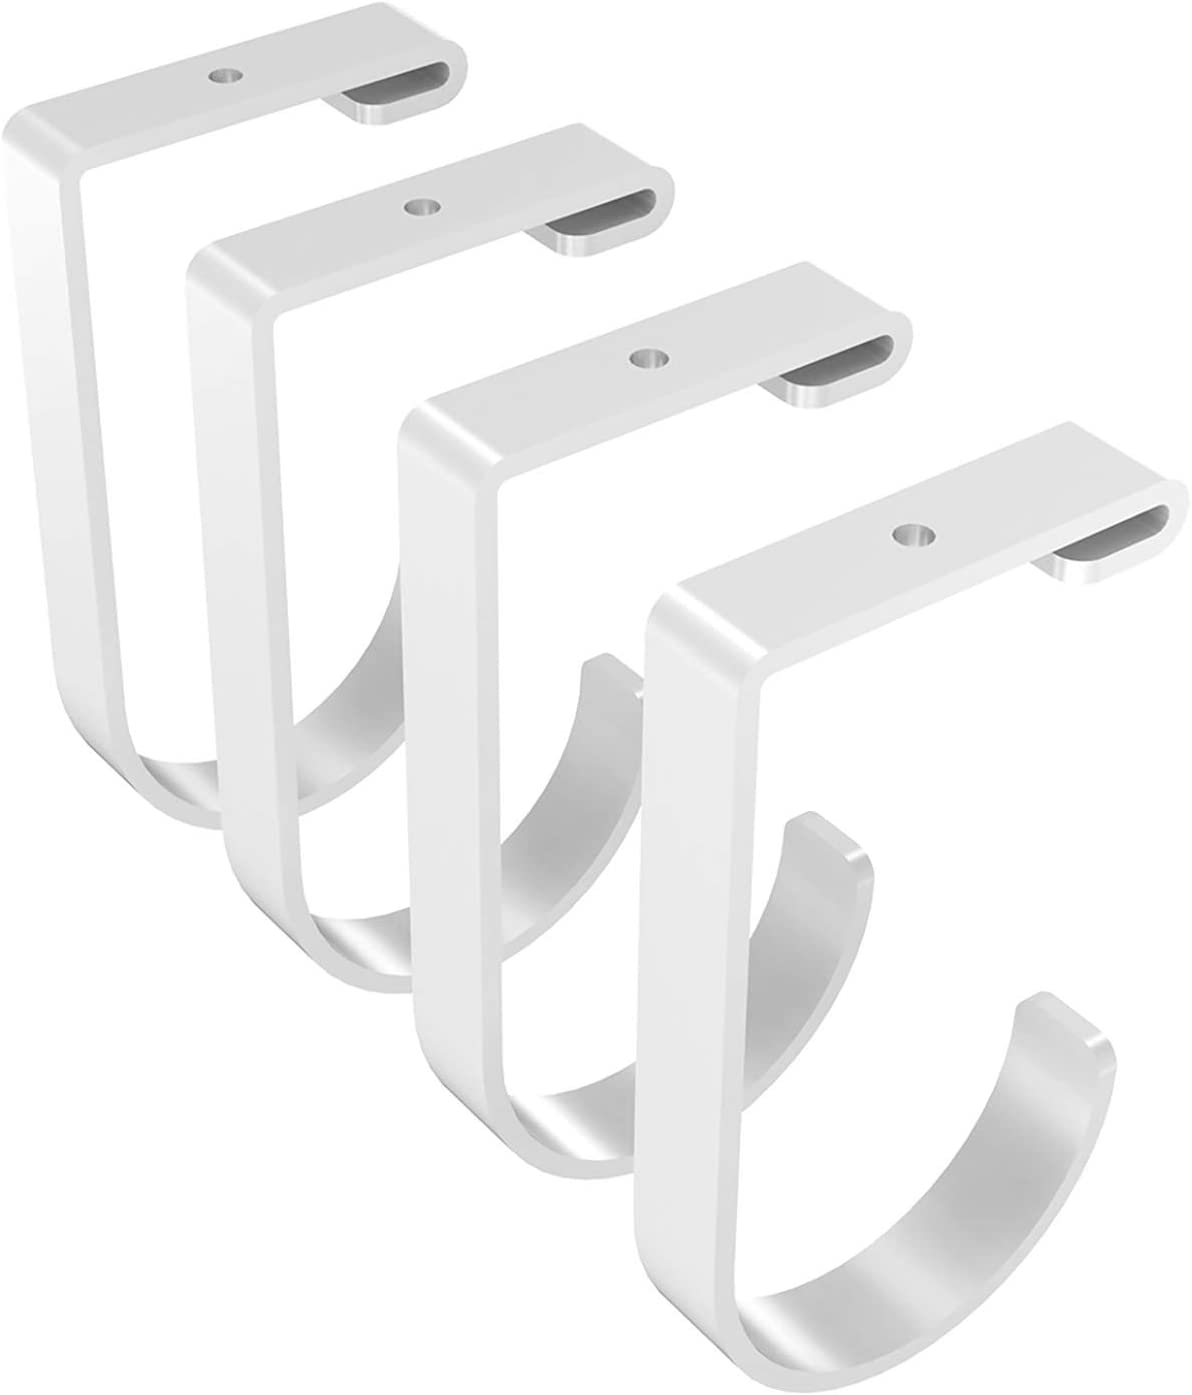 Amazon Com Fleximounts Add On Storage Hook Accessory For Ceiling Rack And Wall Shelving 4 Pack Flat Hook X 4 White Home Kitchen